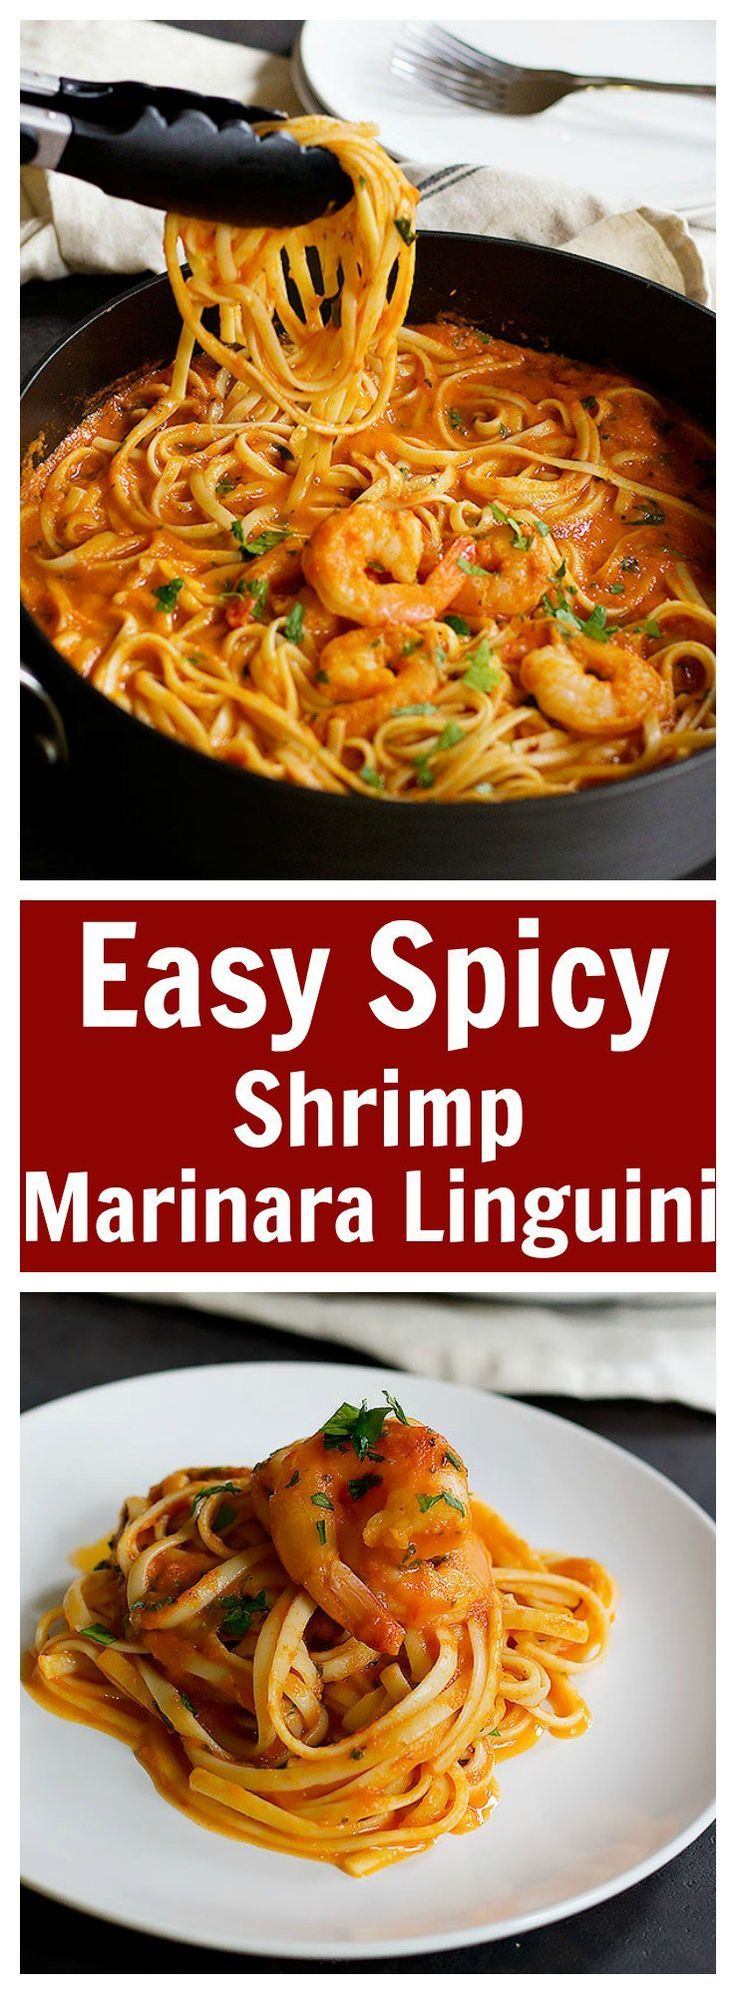 This Easy Spicy Shrimp Marinara Linguine will be on your table in less than 45 minutes and it tastes amazing! With the right amount of spiciness, this pasta will become everyone's favorite!